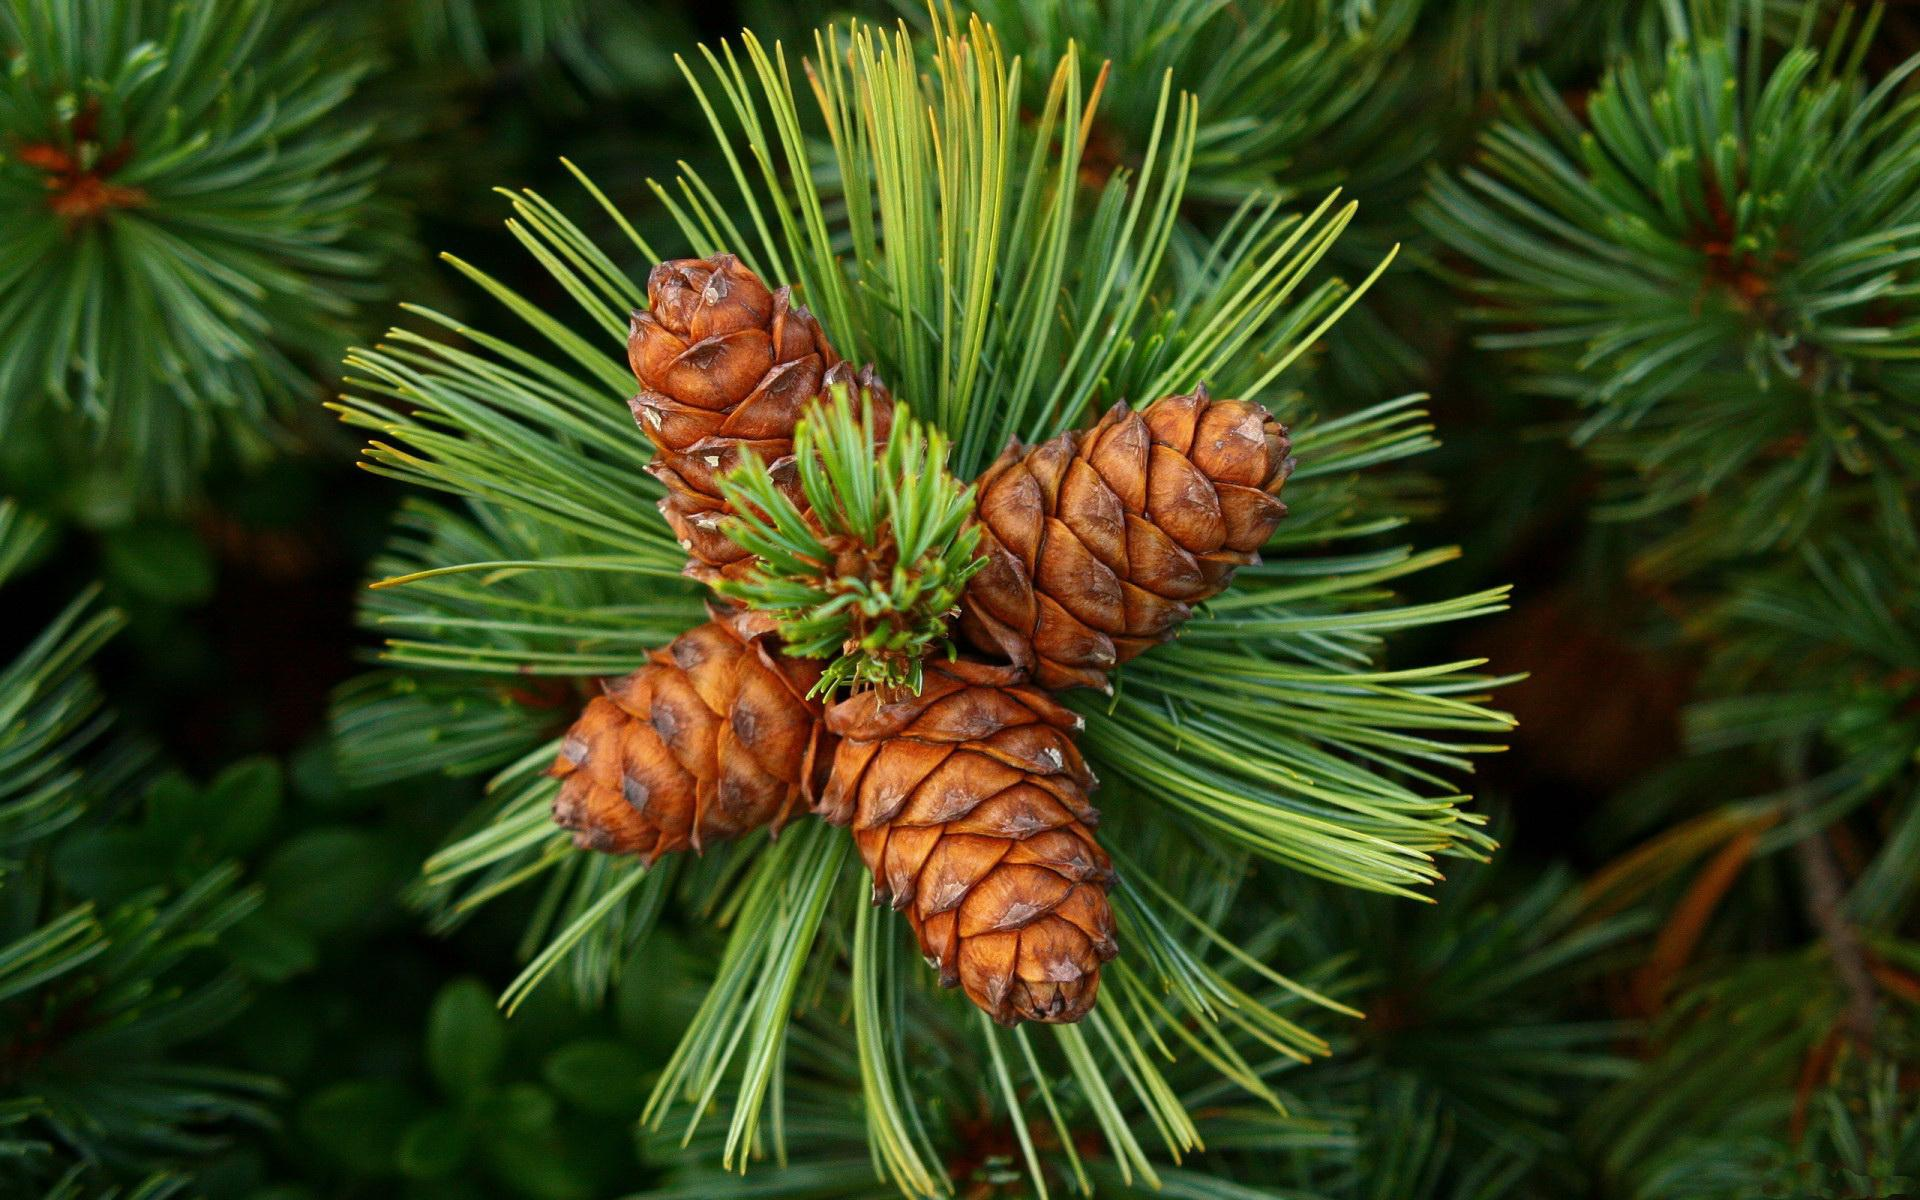 Pretty pine wallpaper 1920x1200 31471 for Pinecone wallpaper